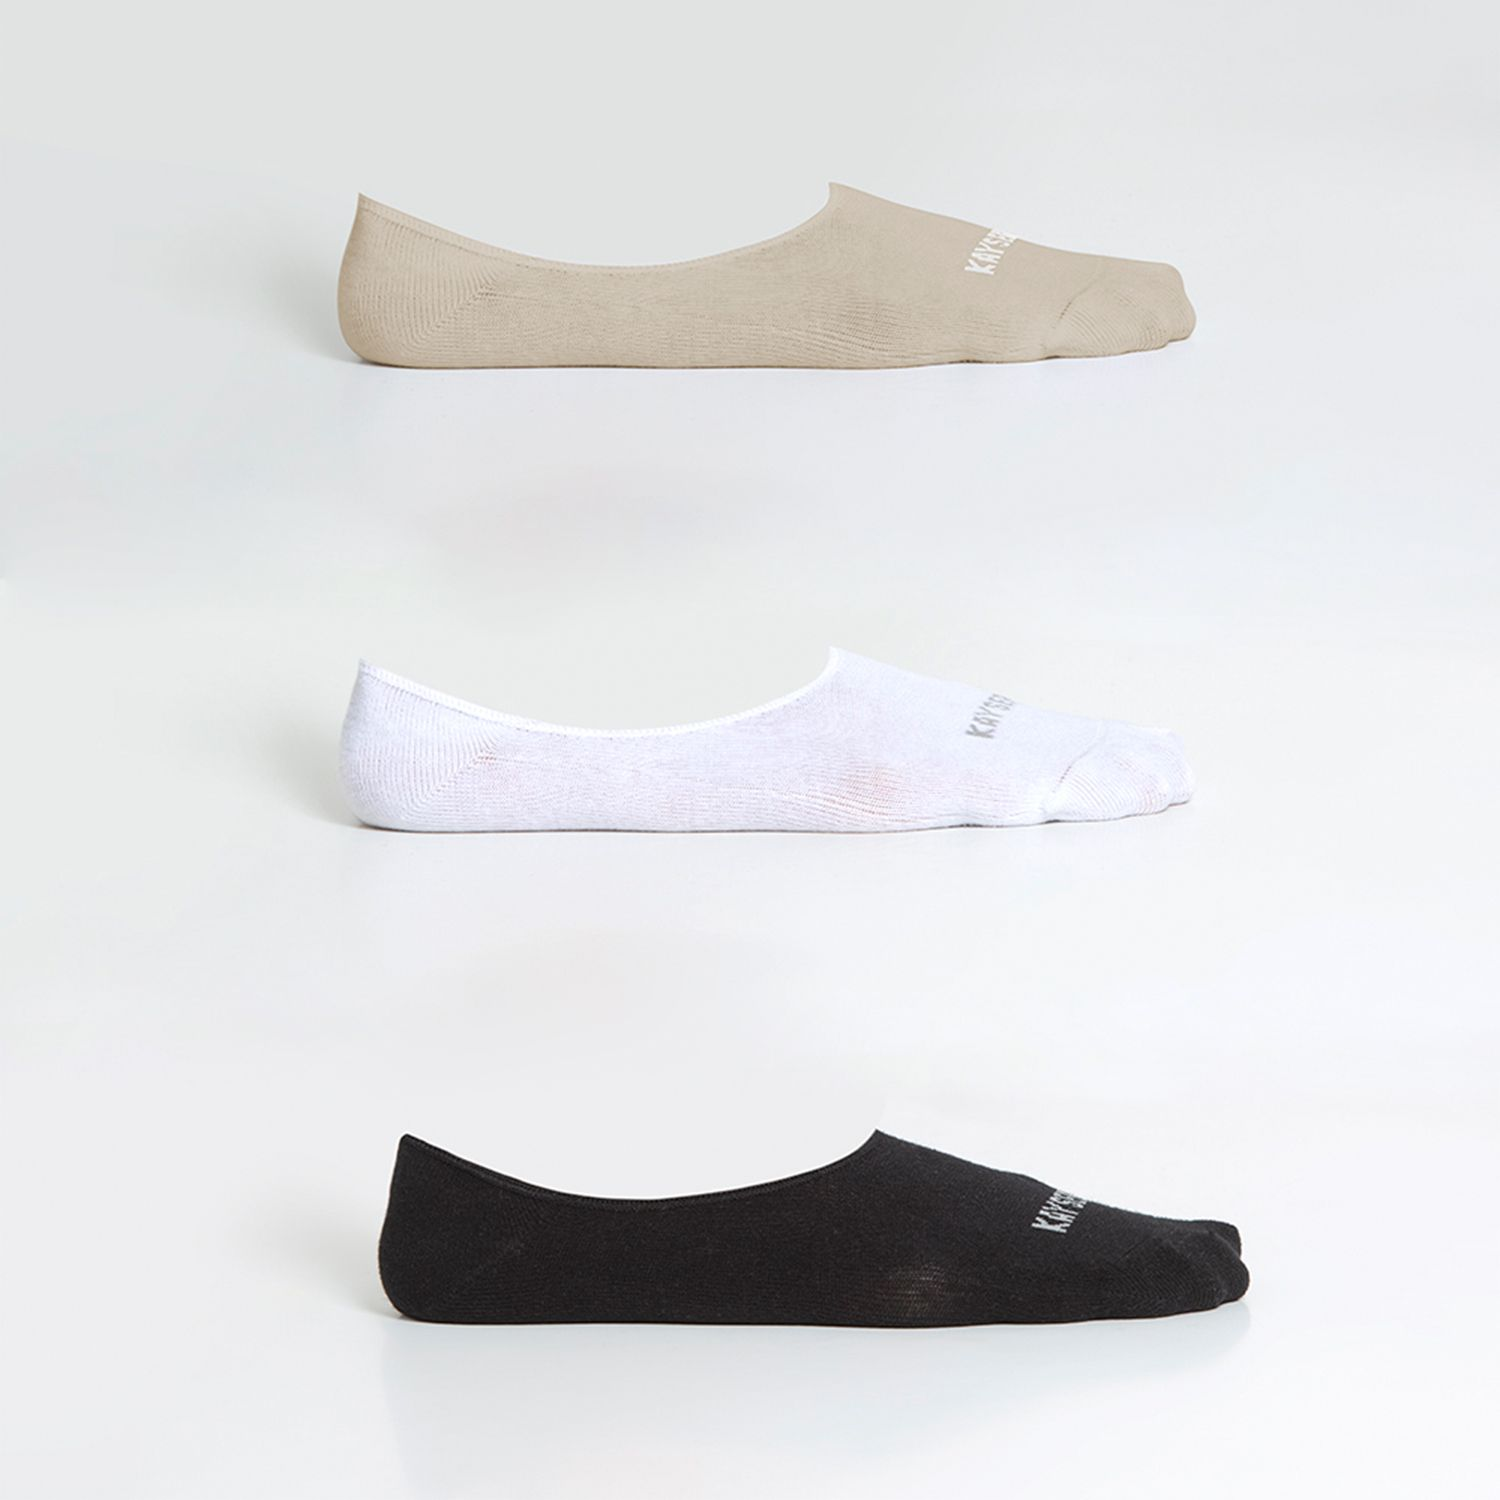 Kayser PACK  CALCETIN DAMA INVISIBLE SURTIDO Medias Casuales